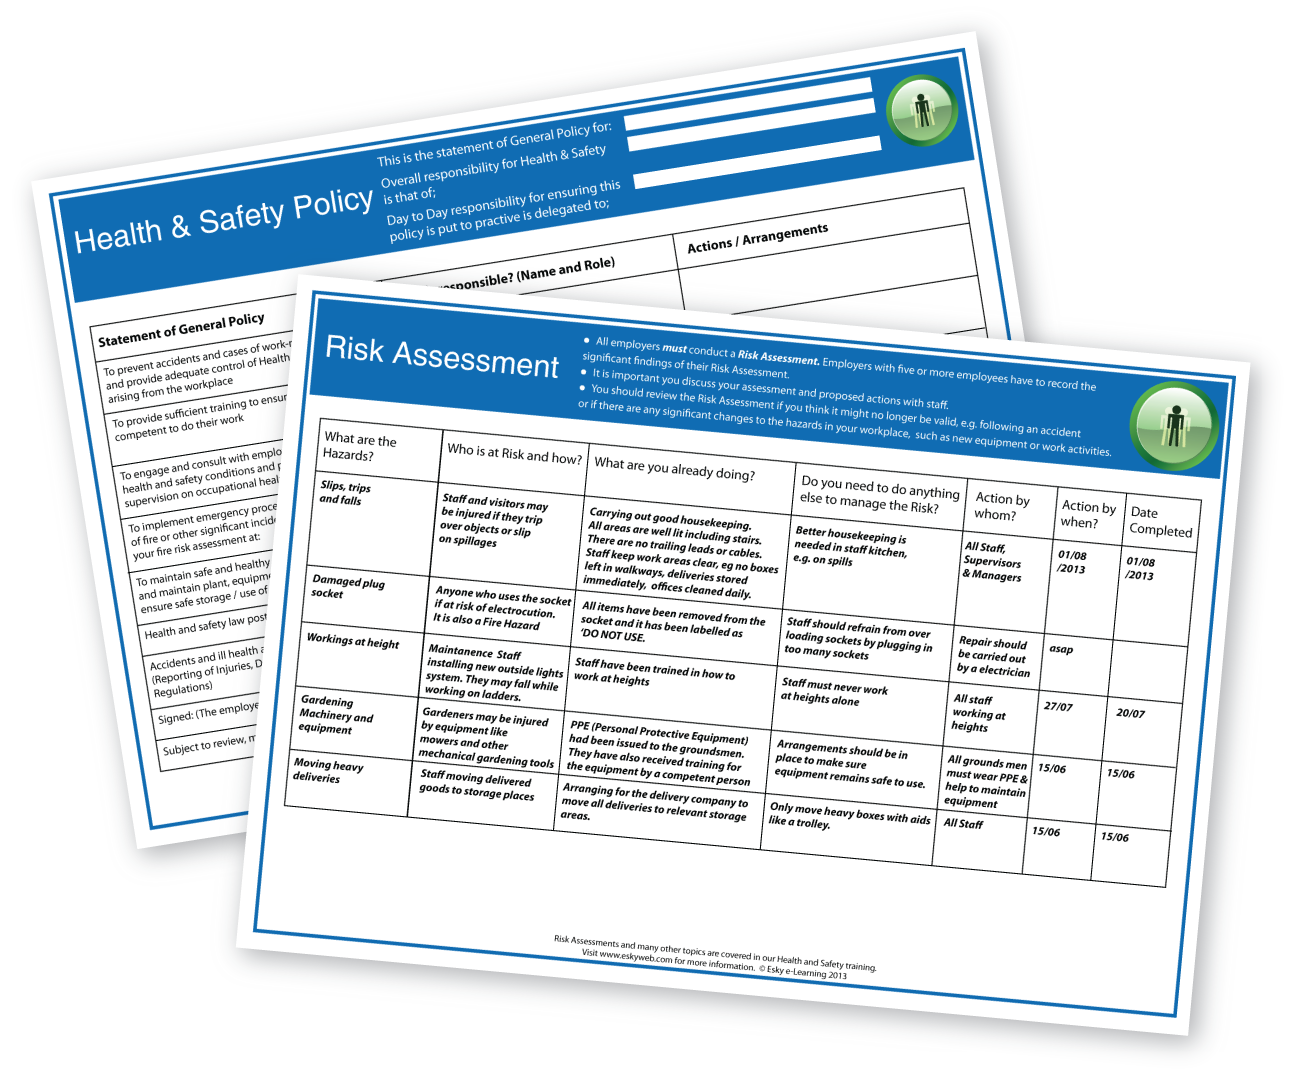 Hse Health And Safety Policy Template New Resource Added Health And Safety Policy Esky E Learning